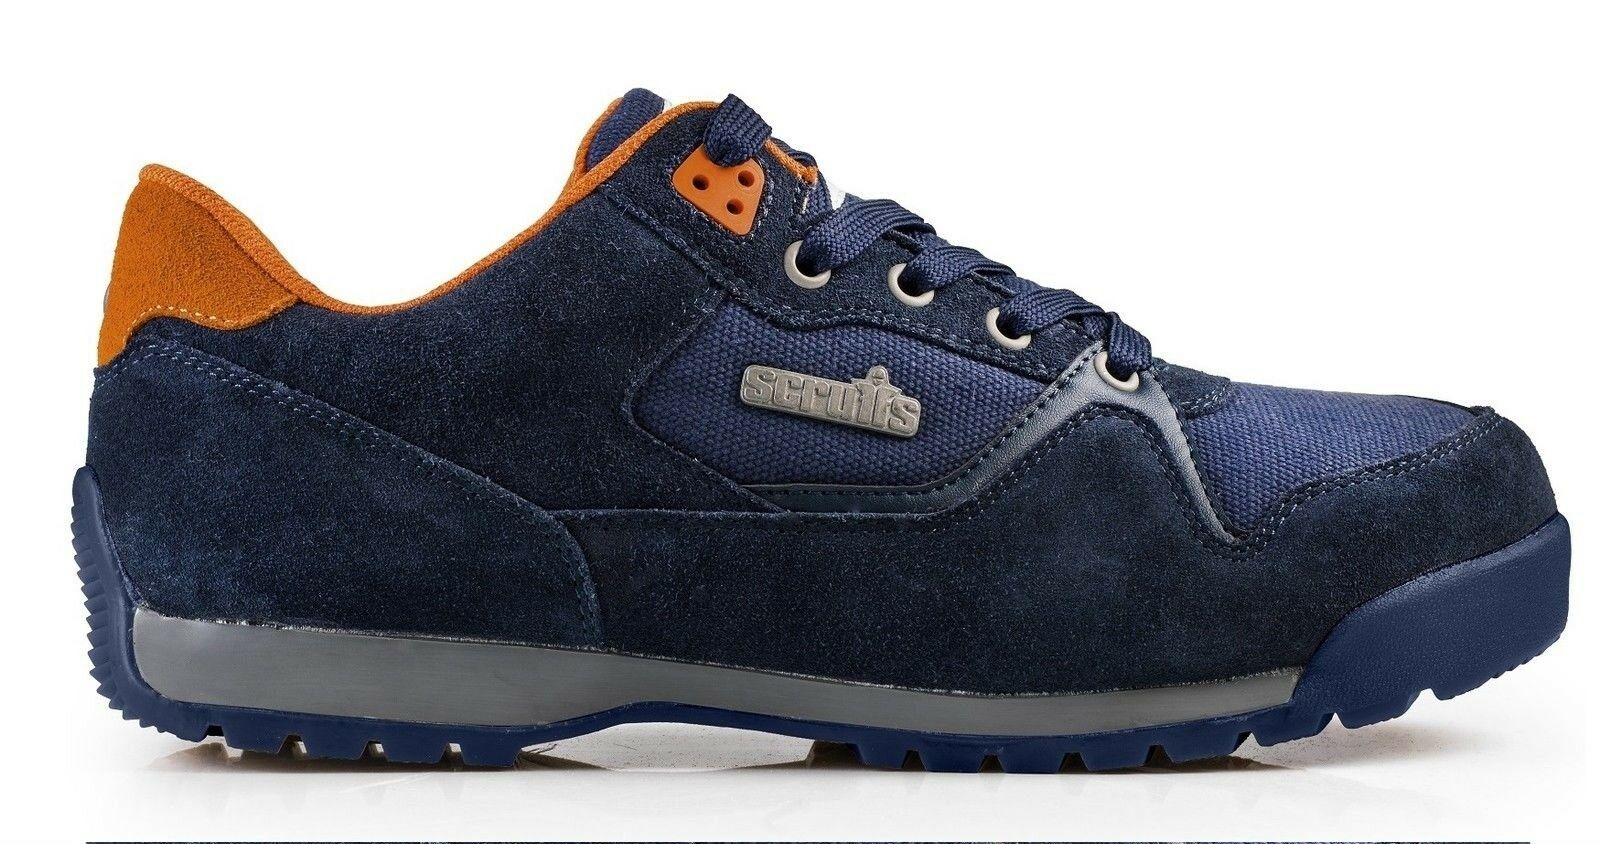 Scruffs Work HALO 2 Safety Trainers Navy (Talla 7-12) Hombre Work Scruffs Zapatos Steel Toe Cap 658b4d